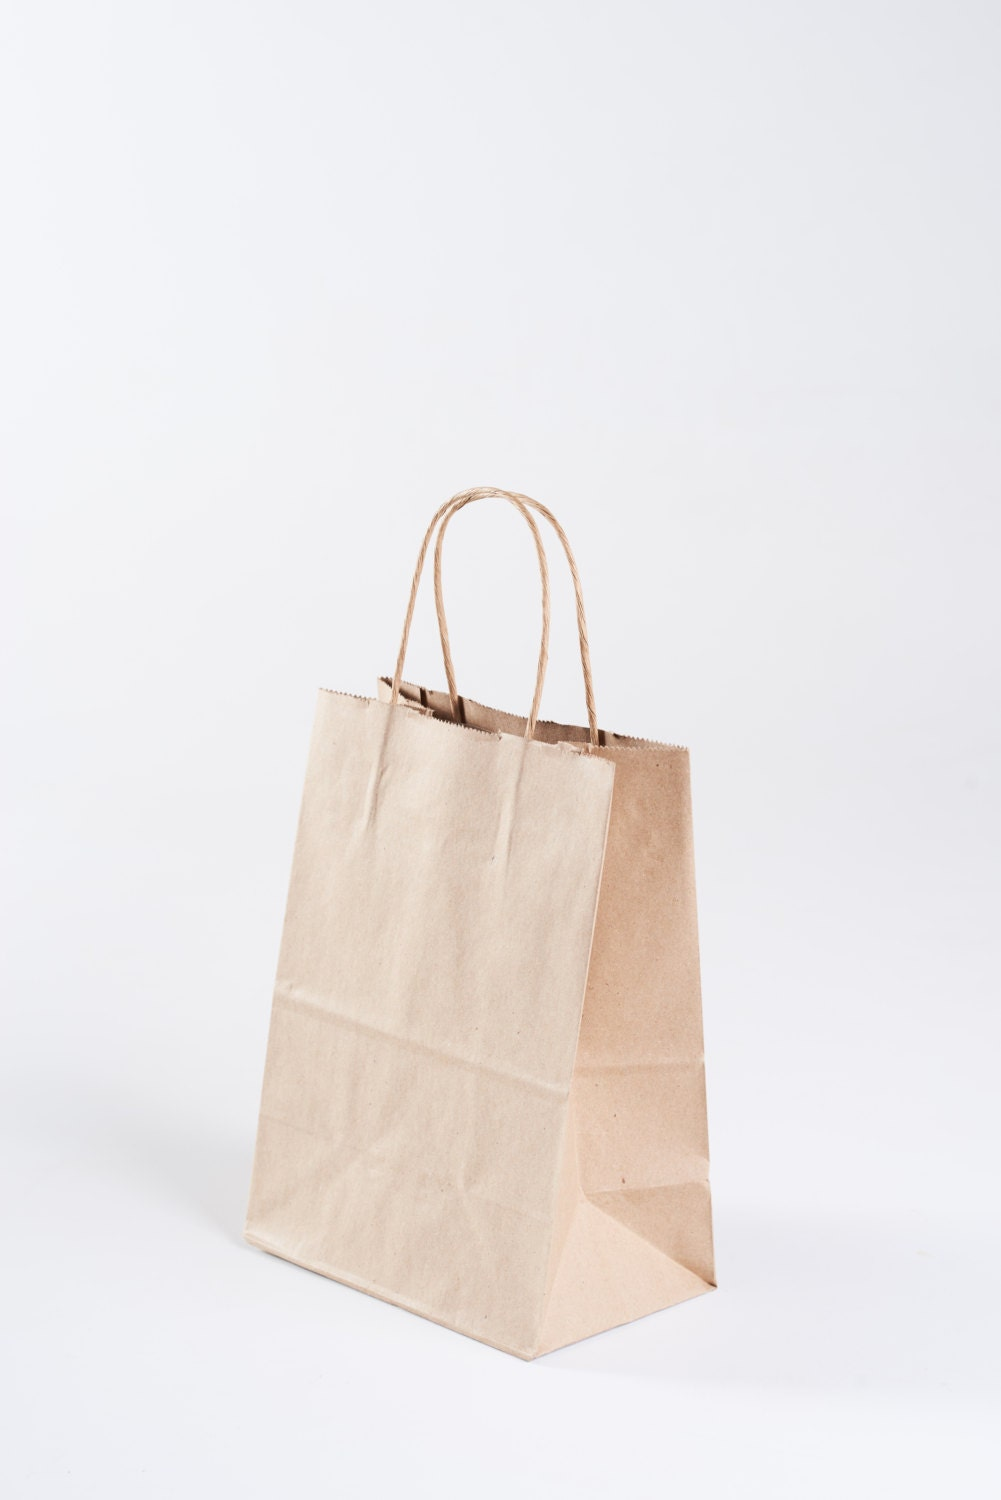 50 Bulk Kraft Paper Gift Bags With Handles Size Cub